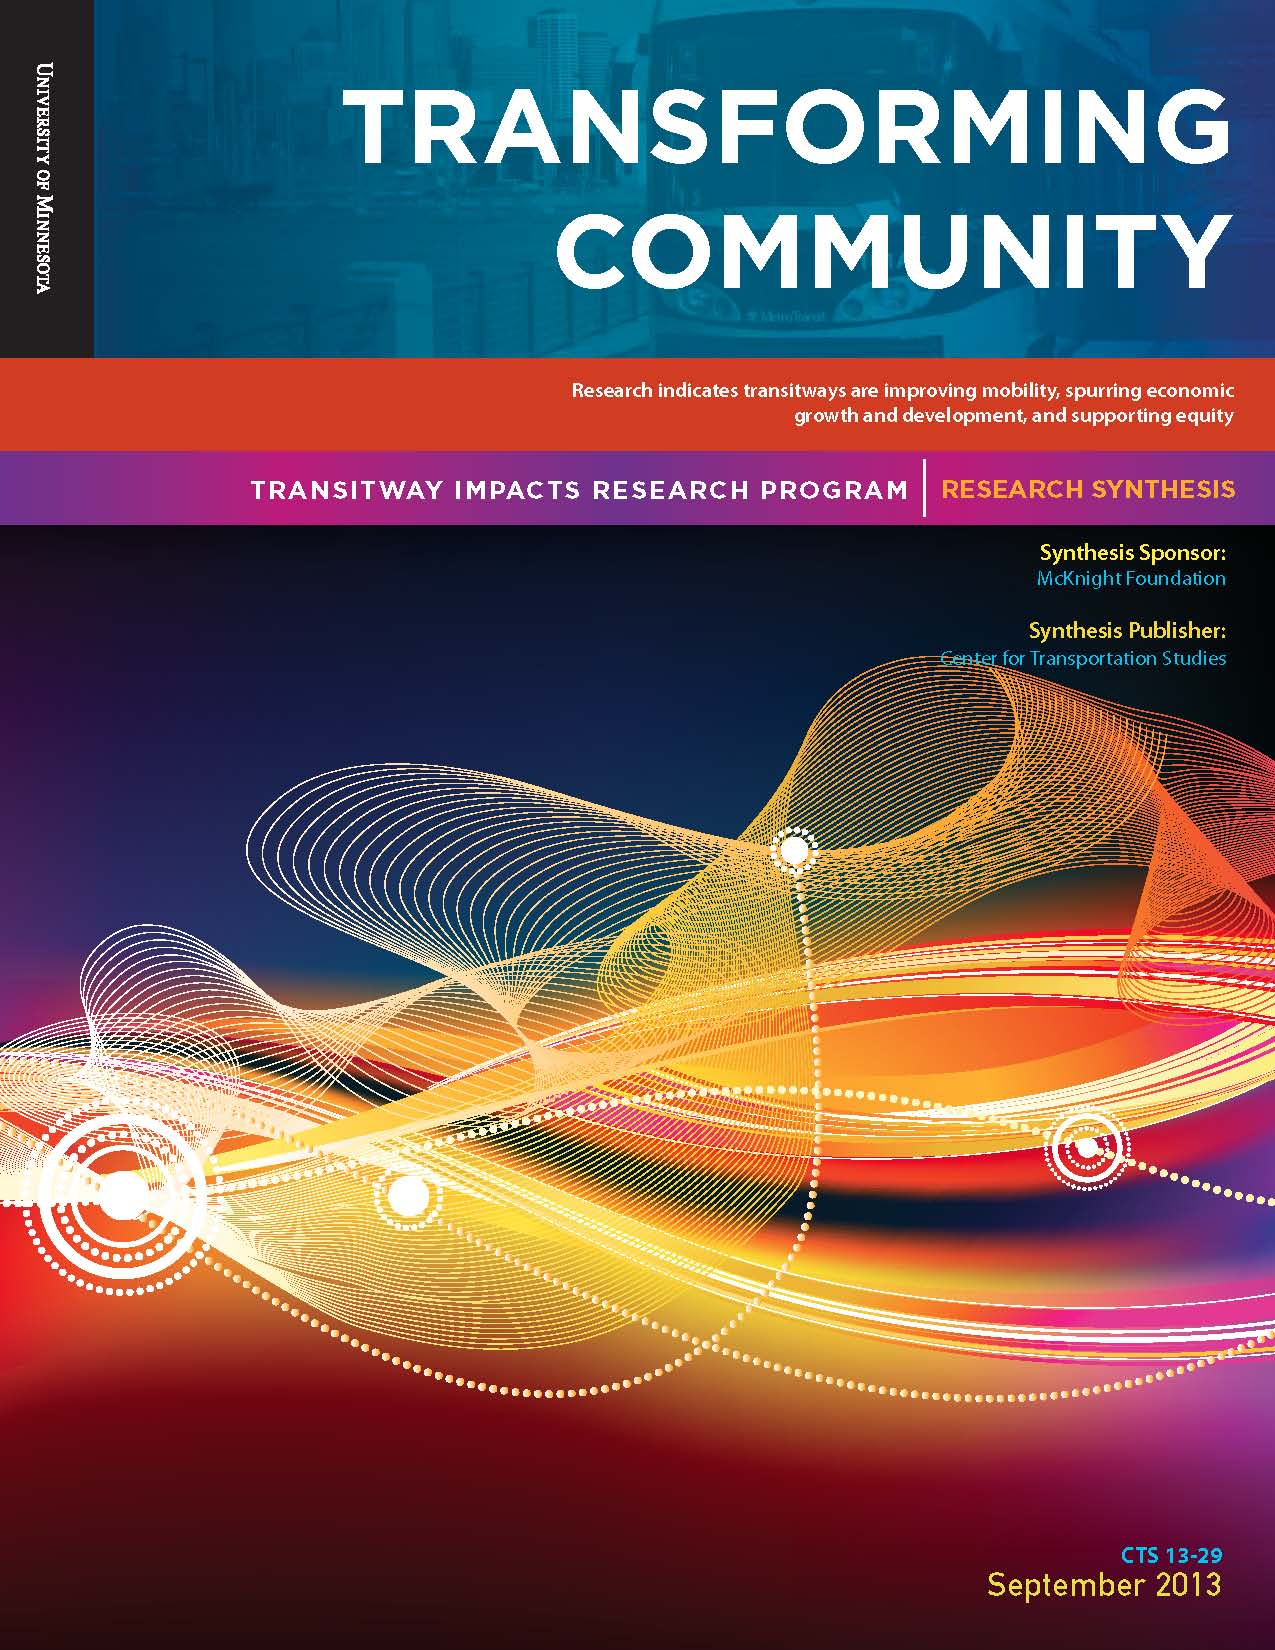 Transforming Community, a research synthesis released by the Center for Transportation Studies at the University of Minnesota.